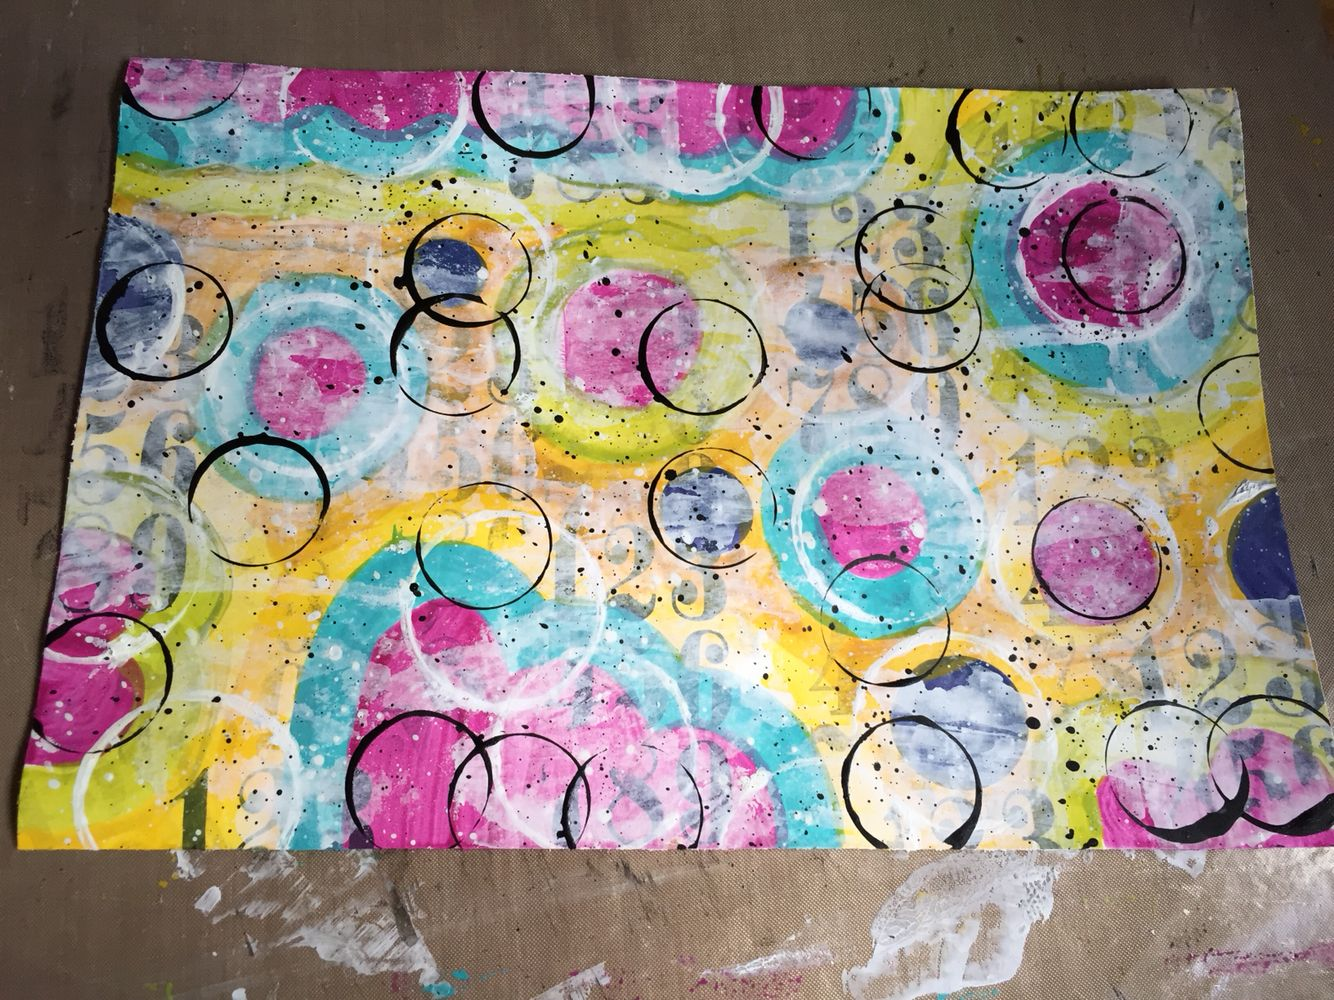 Another mixed media play with paints, inspired by Roben Marie Smith and Emma Godfrey - this one is now wrapped around a glass jar that I keep my paintbrushes in :)